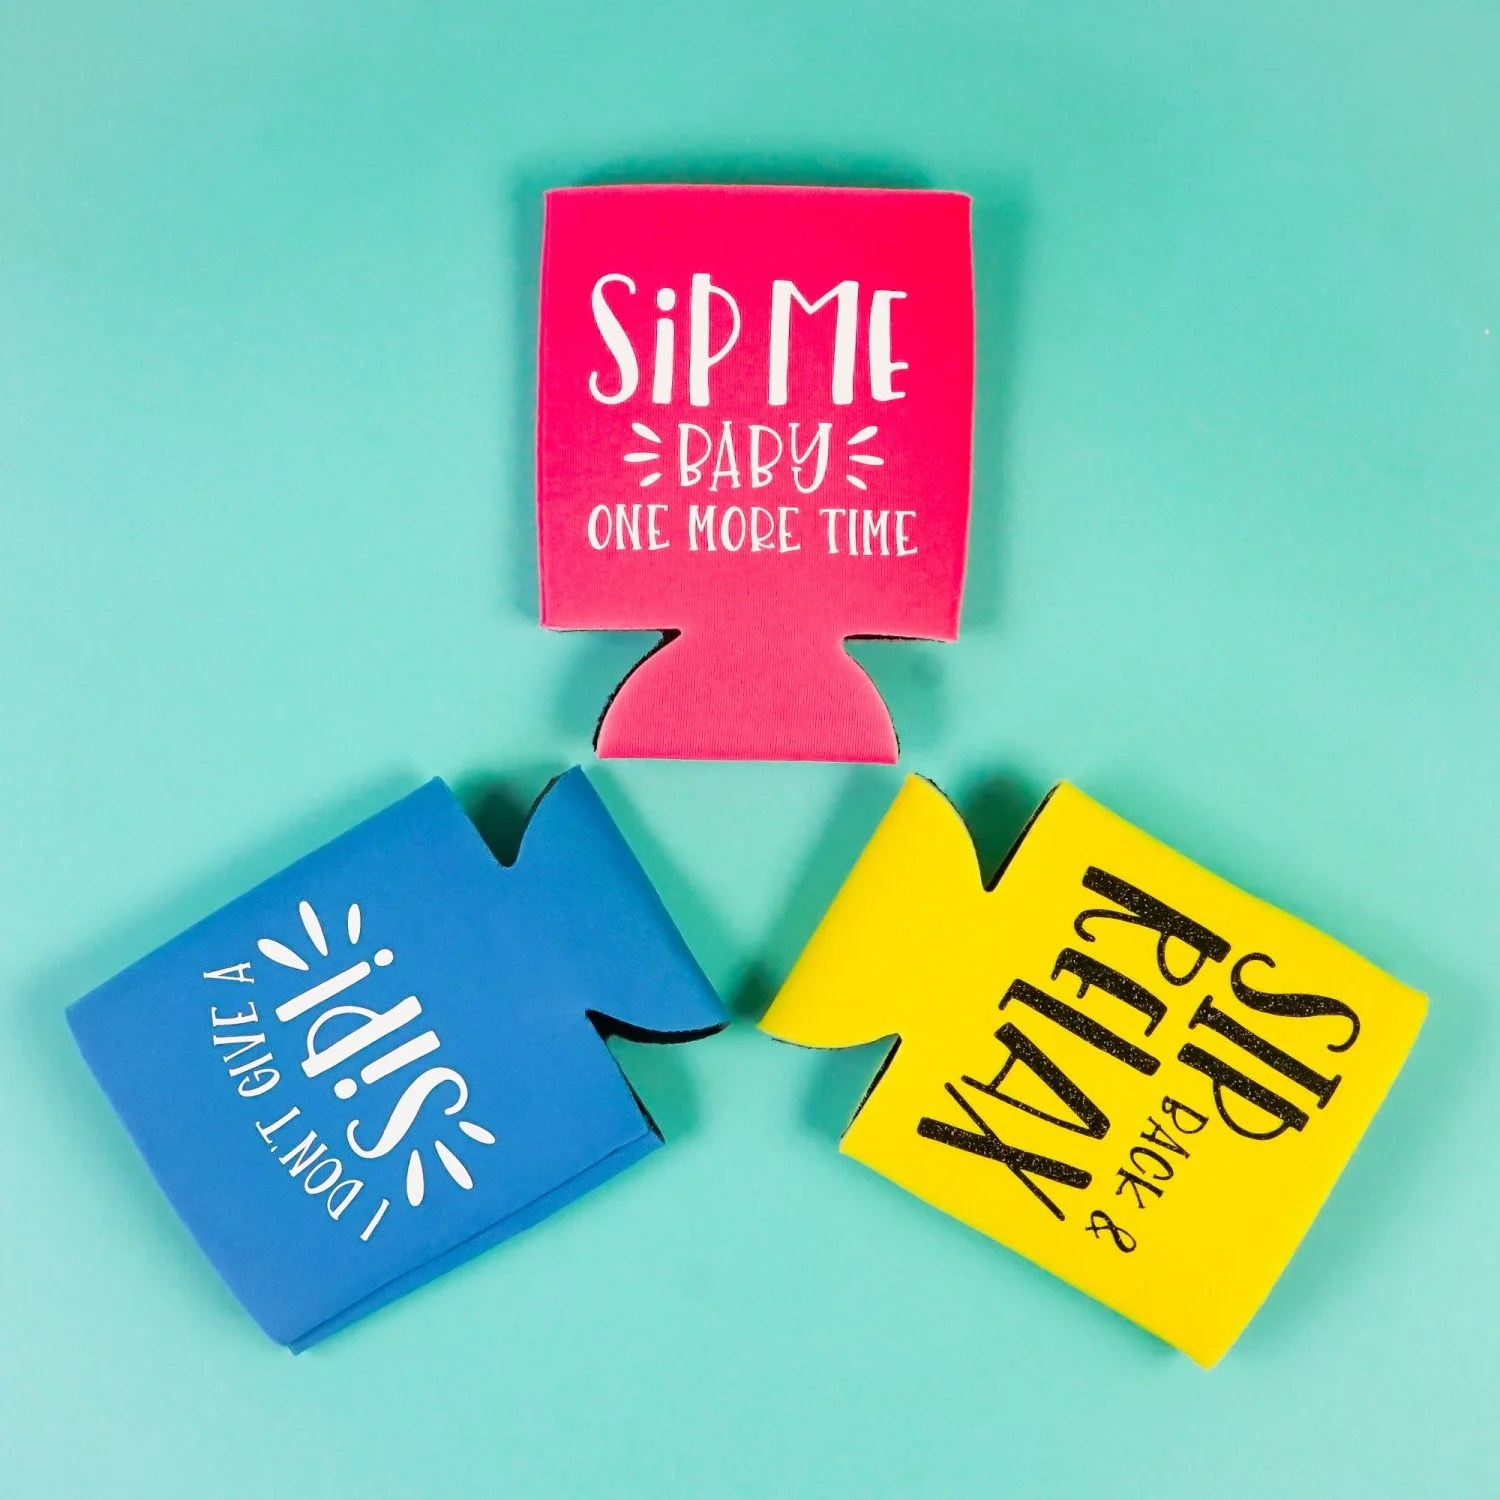 How To Make Cricut Can Koozies With Iron On Vinyl Hey Let S Make Stuff